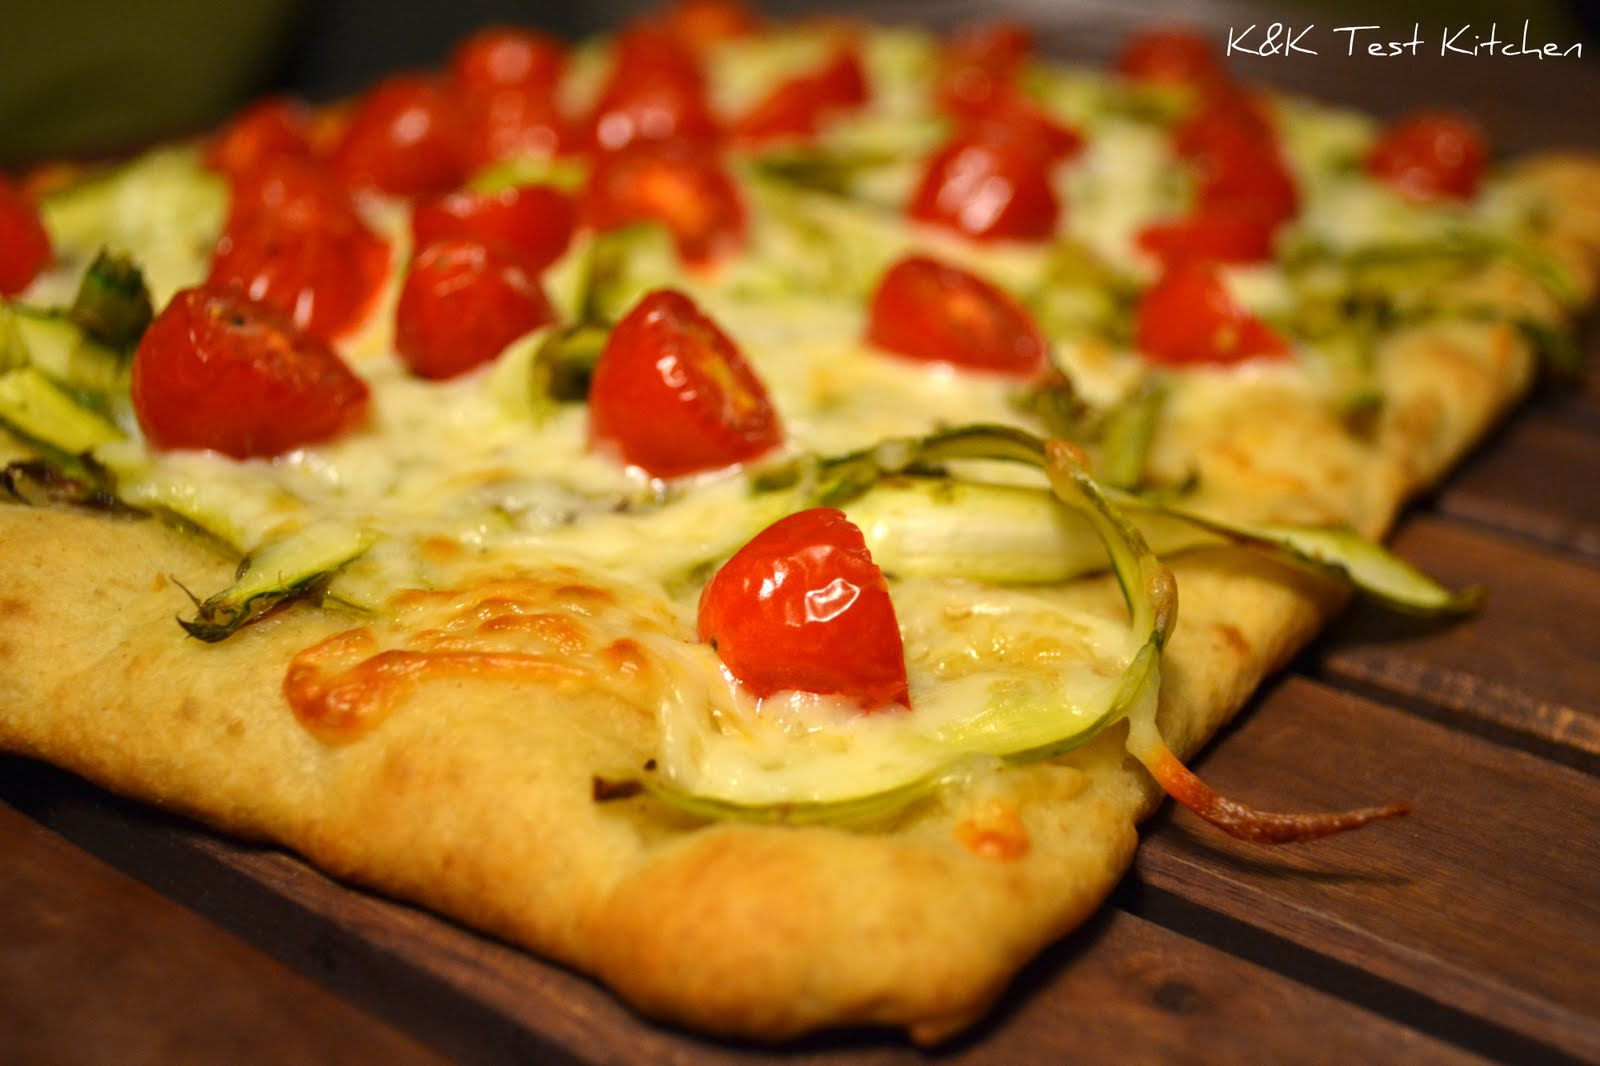 Test Kitchen: Asparagus and Cherry Tomato Pizza